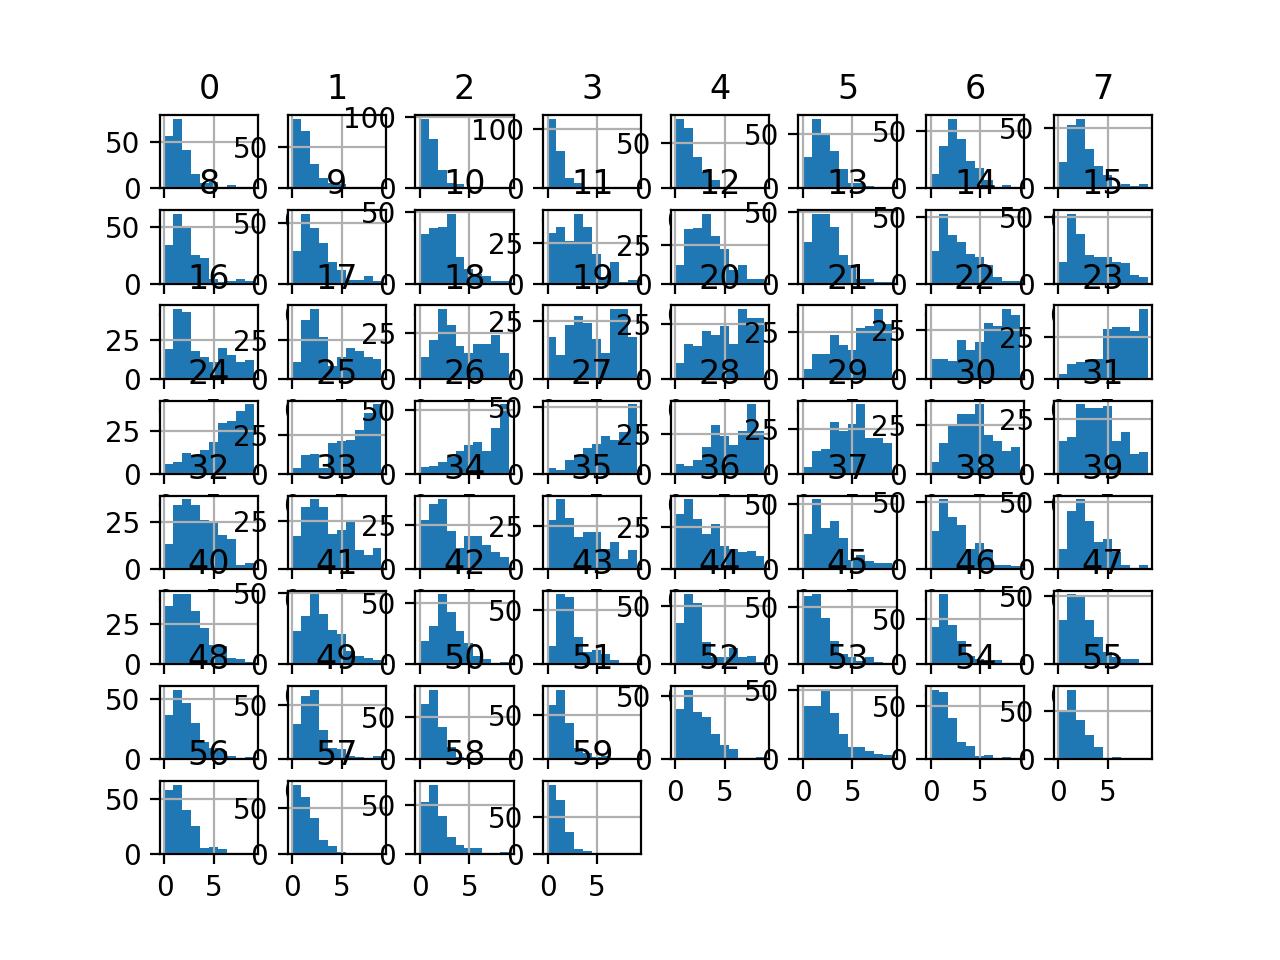 Histogram Plots of Uniform Discretization Transformed Input Variables for the Sonar Dataset